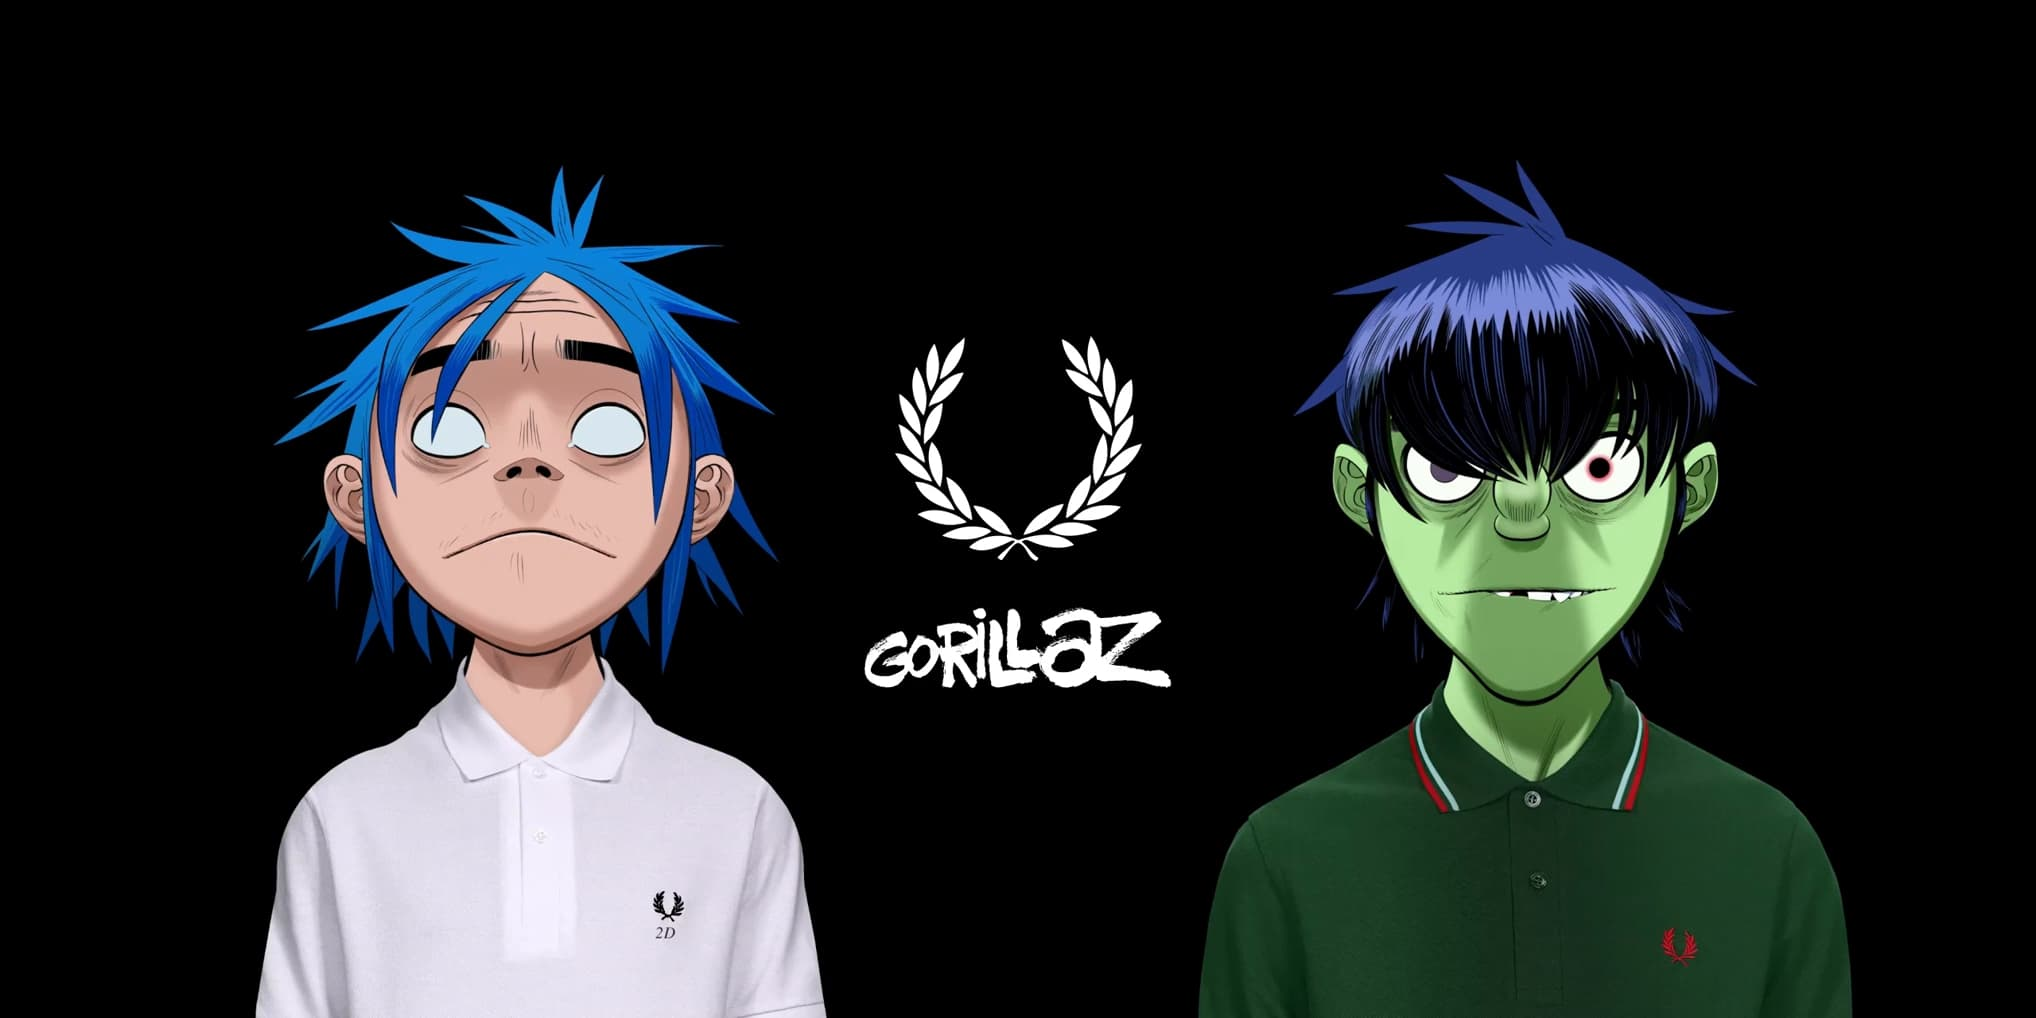 Fred Perry Gorillaz Spring 2021 Ad Campaign Photos